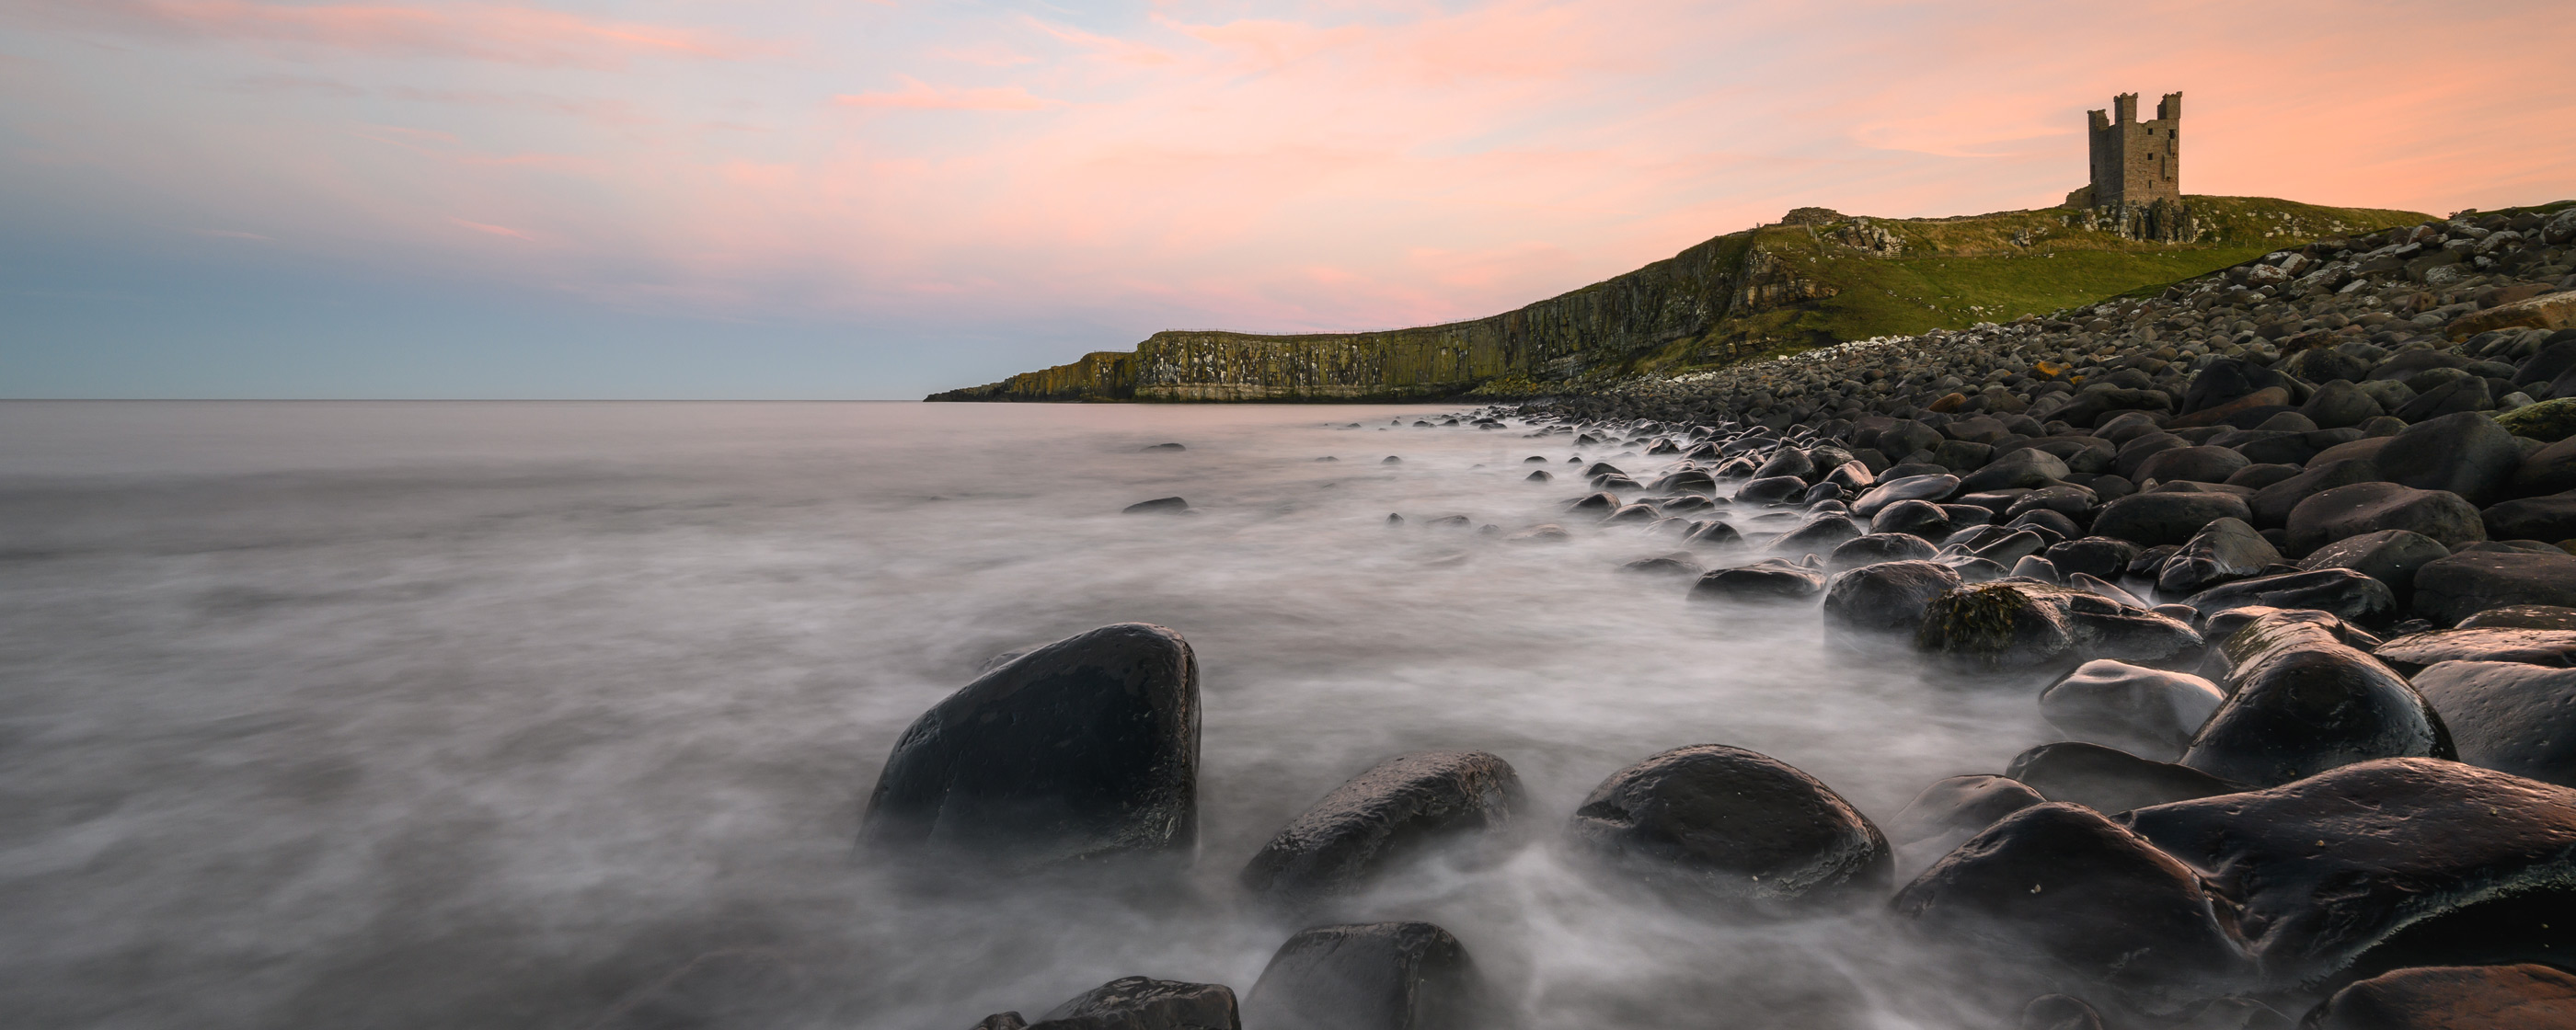 long exposure landscape photo with rocks, water and land, taken with the NIKKOR Z 14-30mm f/4 S